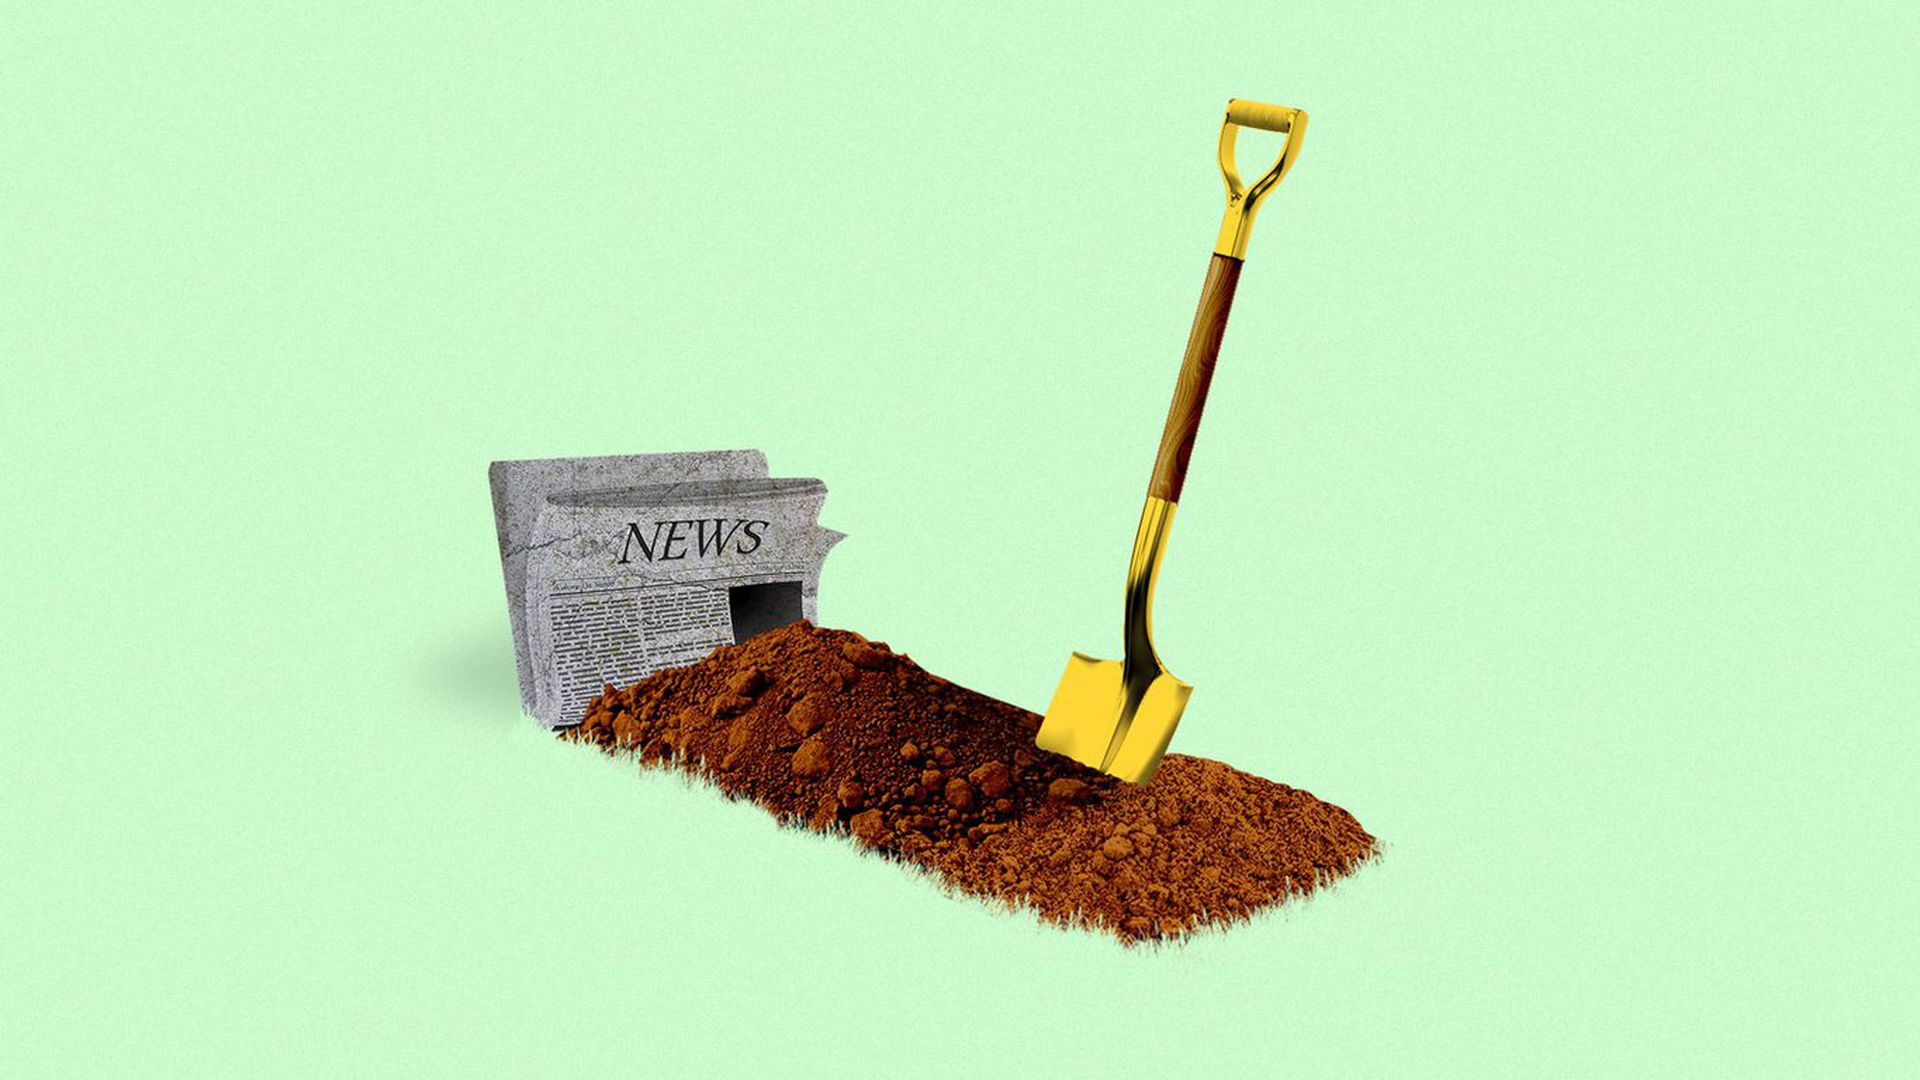 A grave for a newspaper.